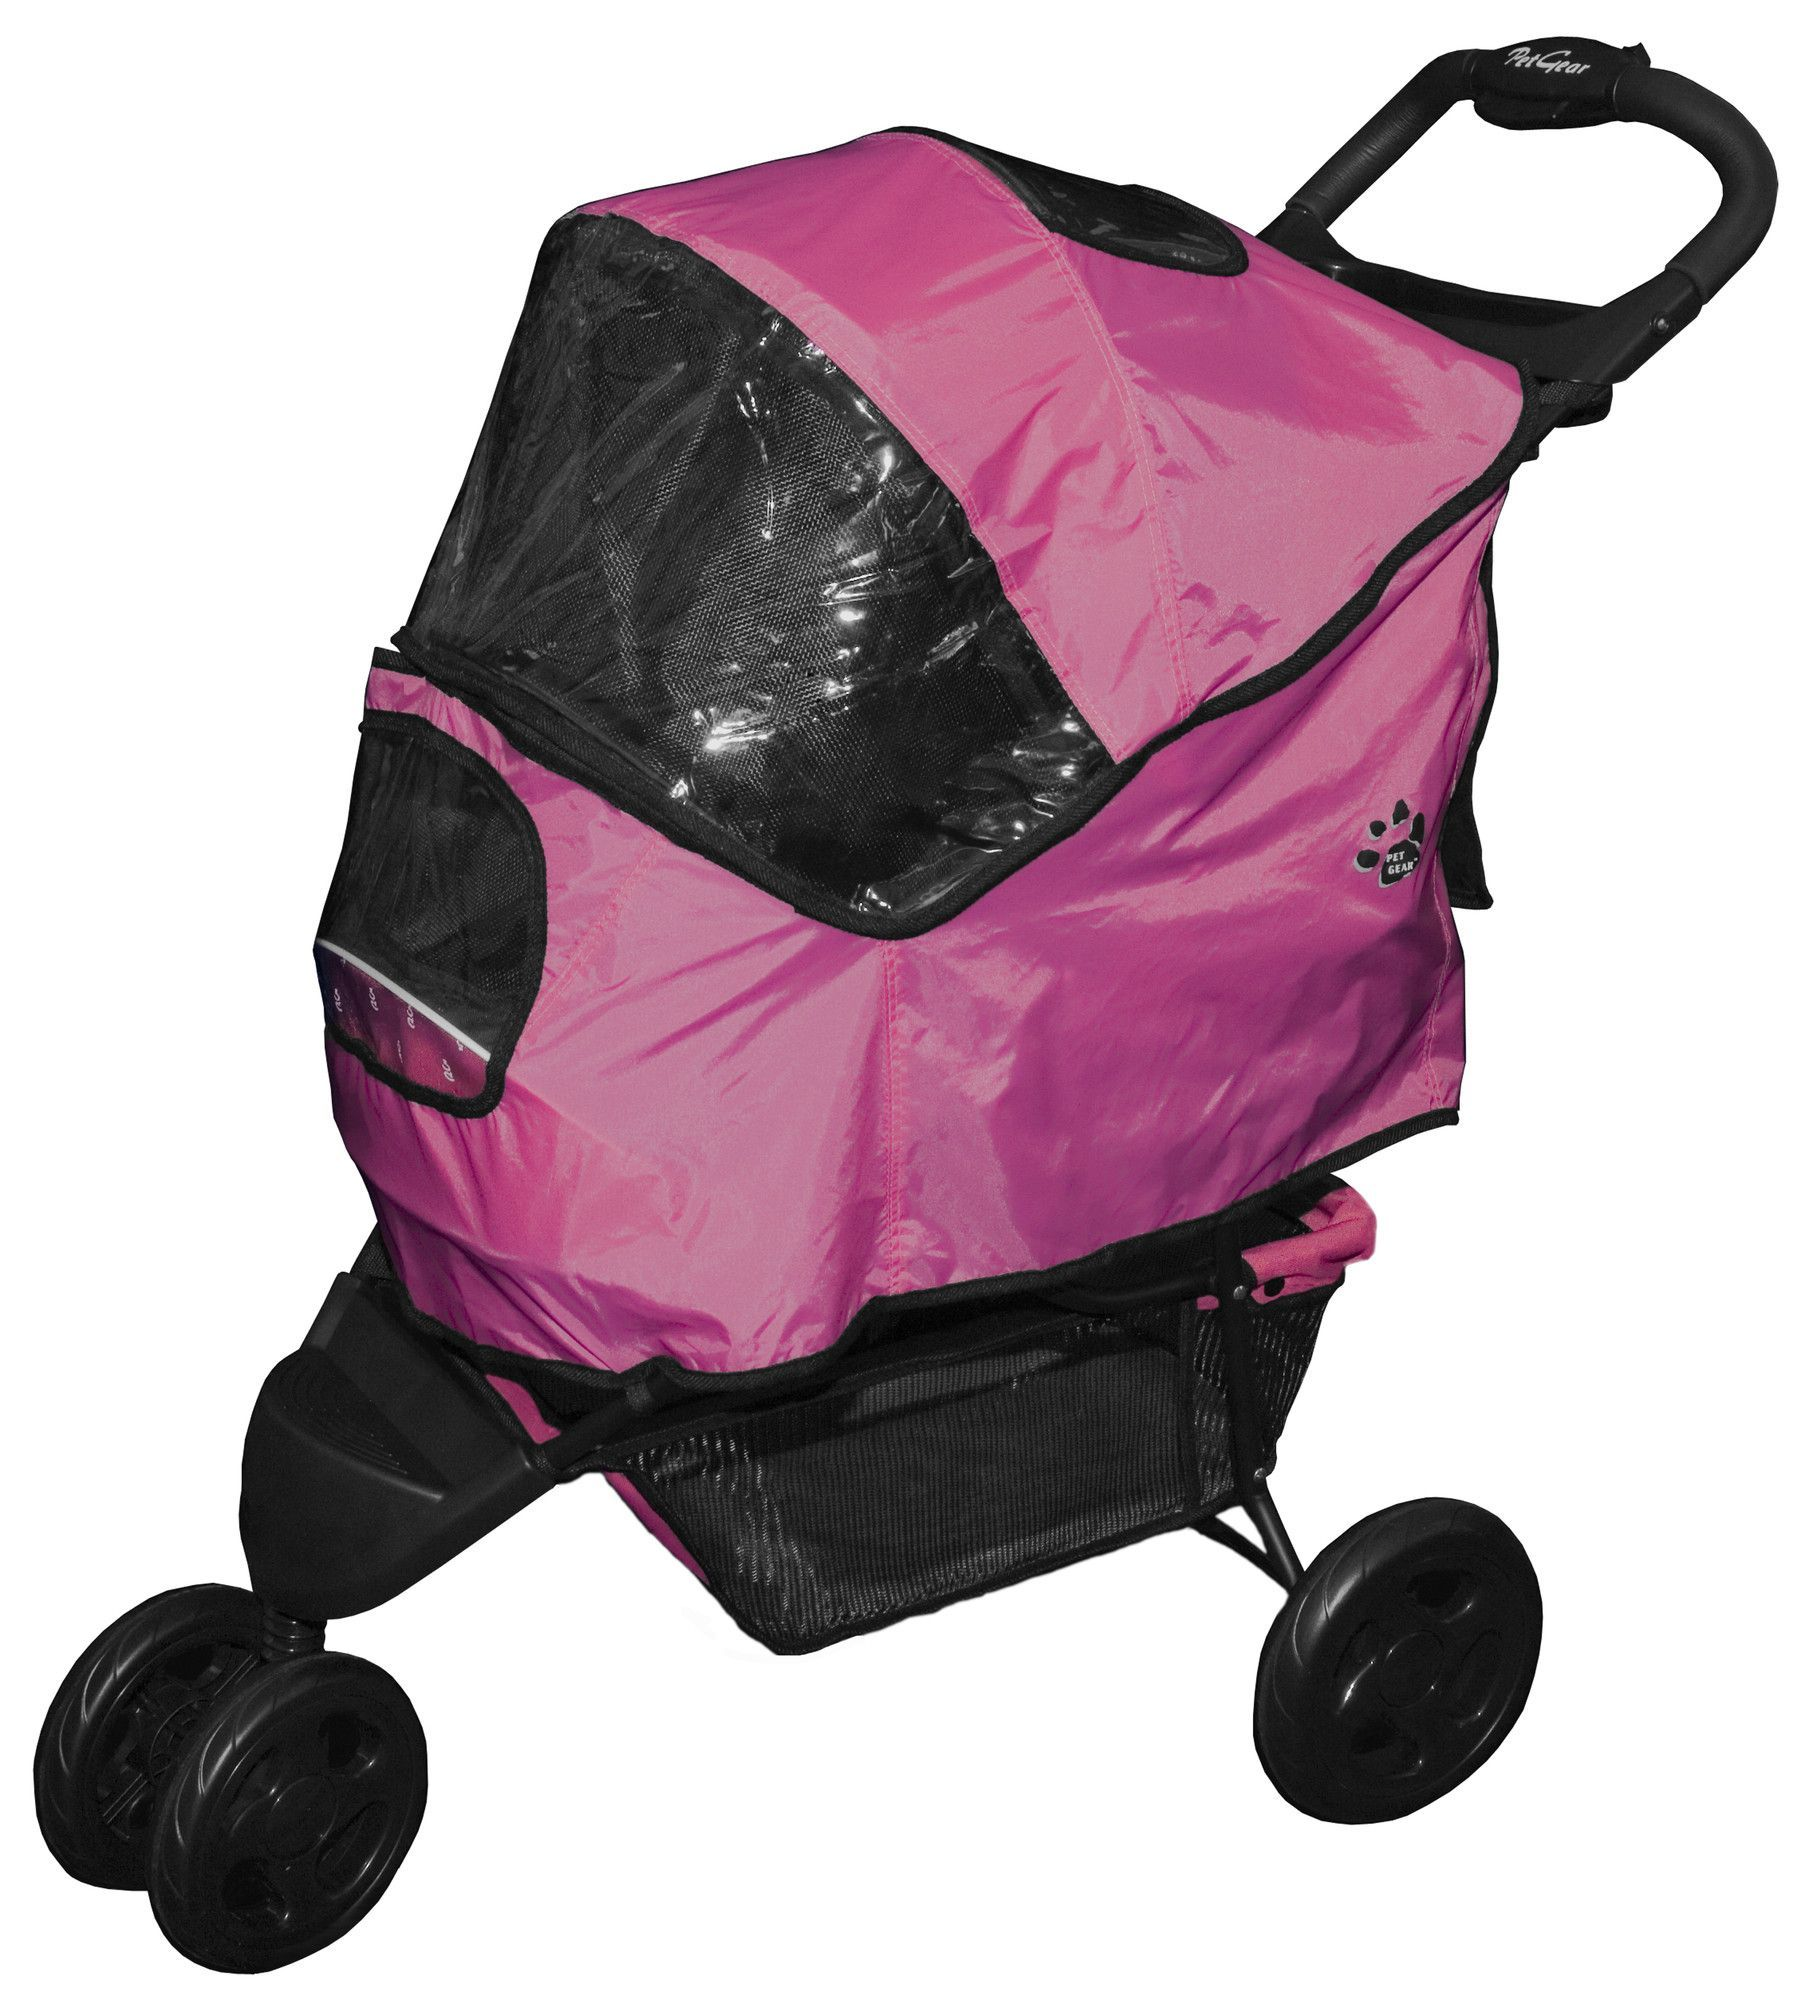 Weather Cover for Special Edition Pet Stroller Pet gear